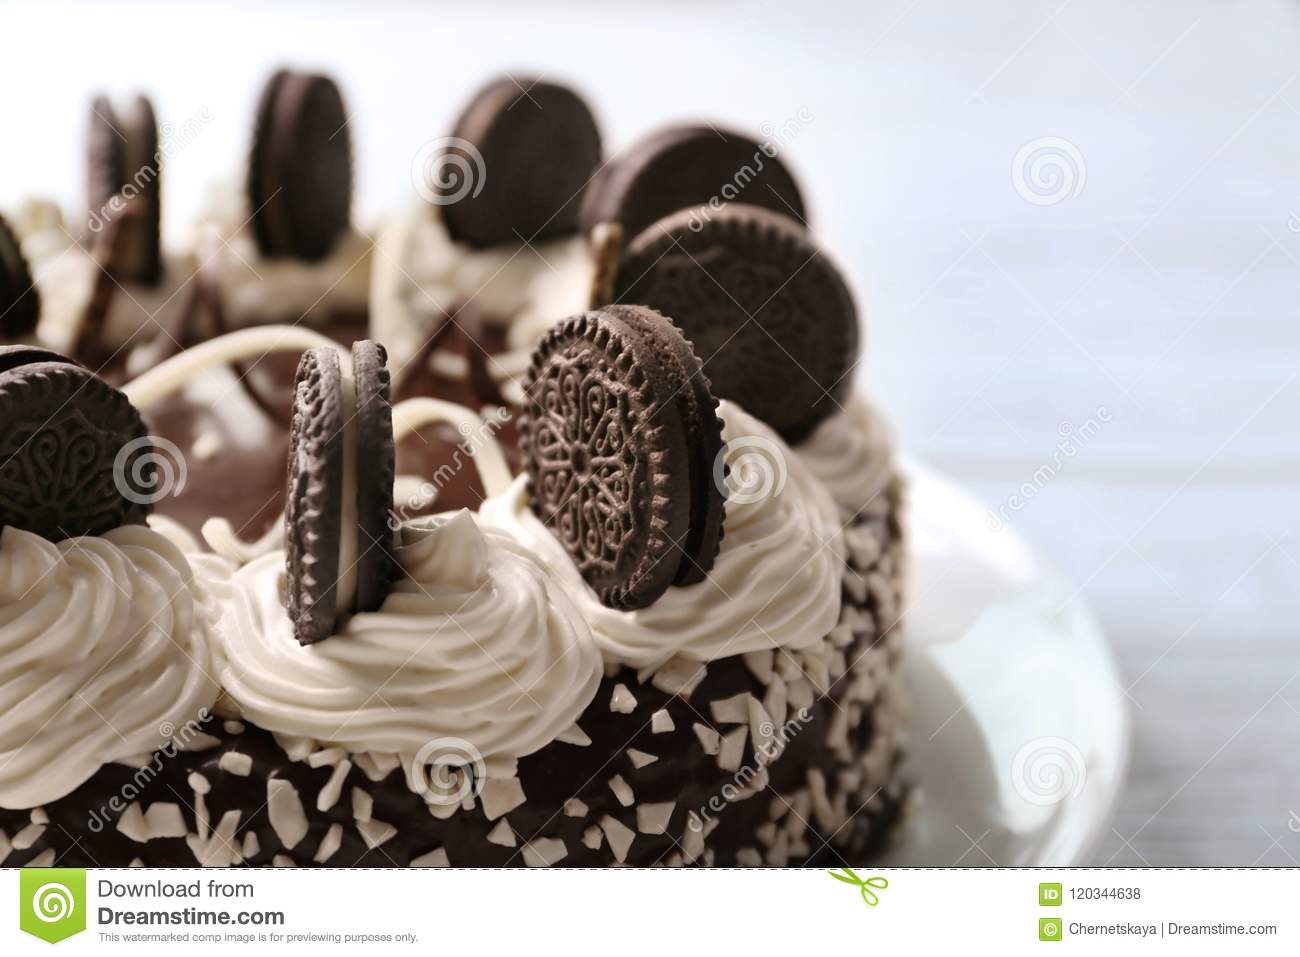 Delicious Cake With Chocolate Cookies And Cream On Blurred Background Close Up View